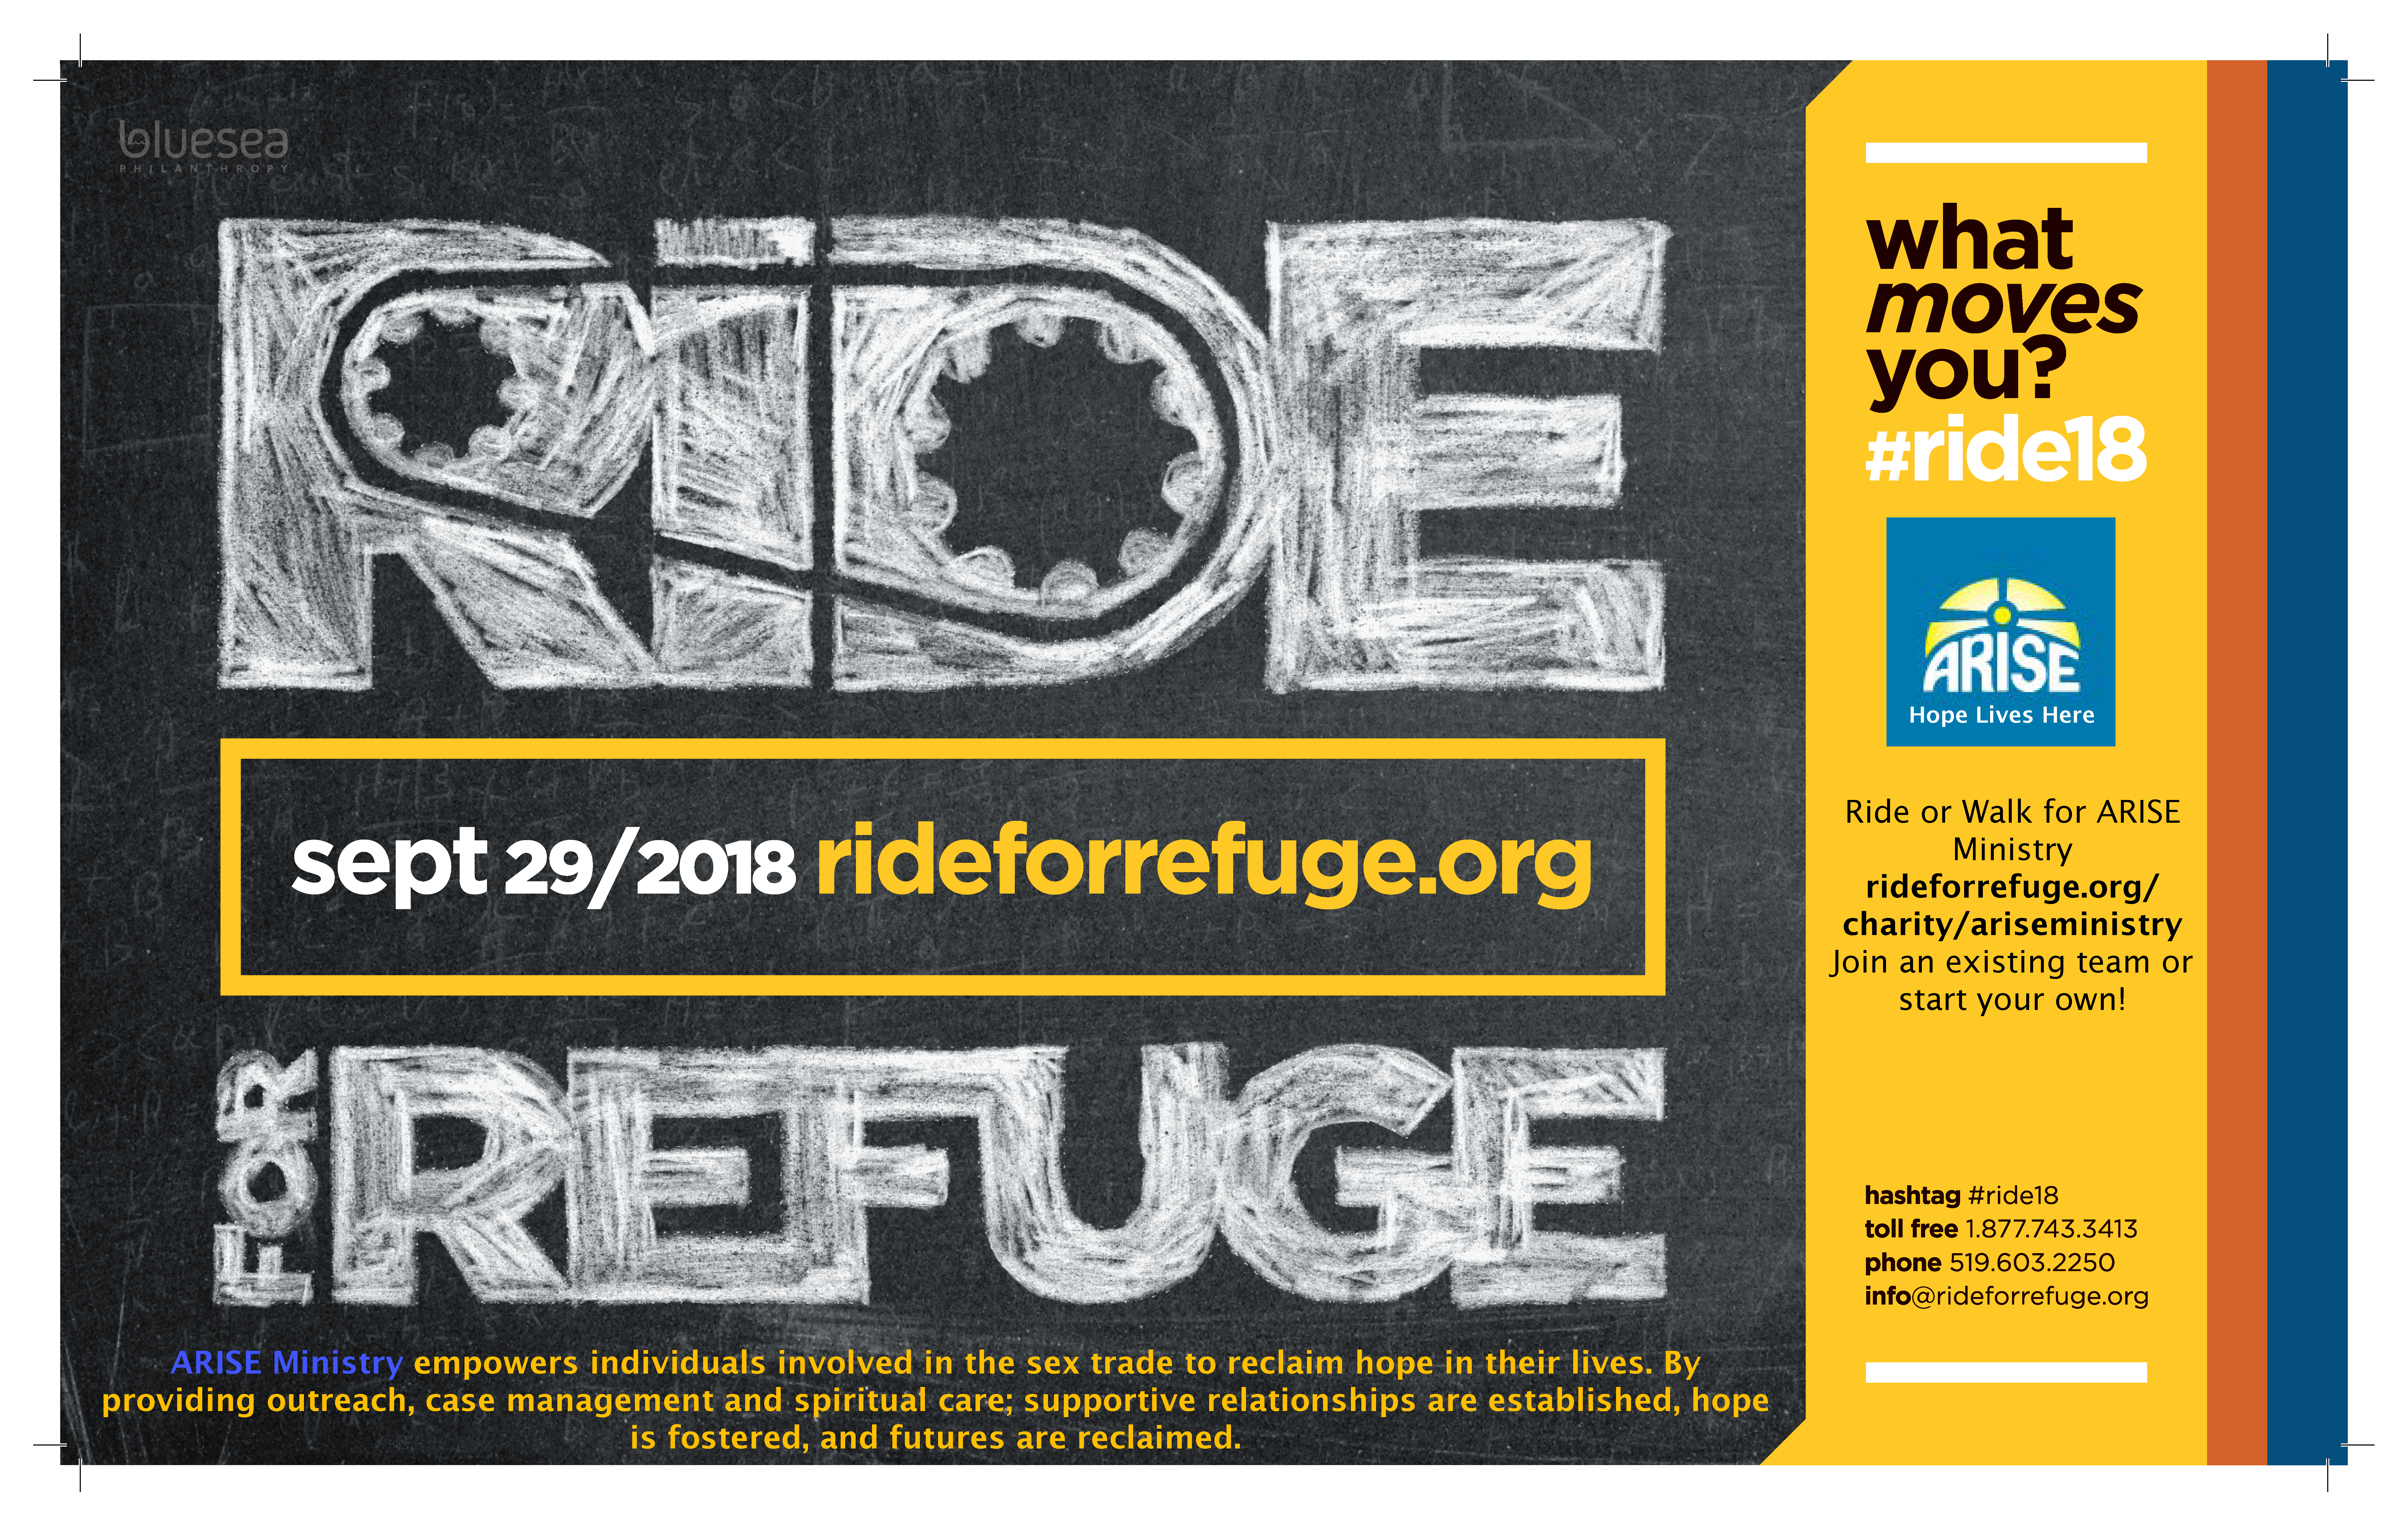 Ride for Refuge (or Walk) on Saturday, September 29th 2018